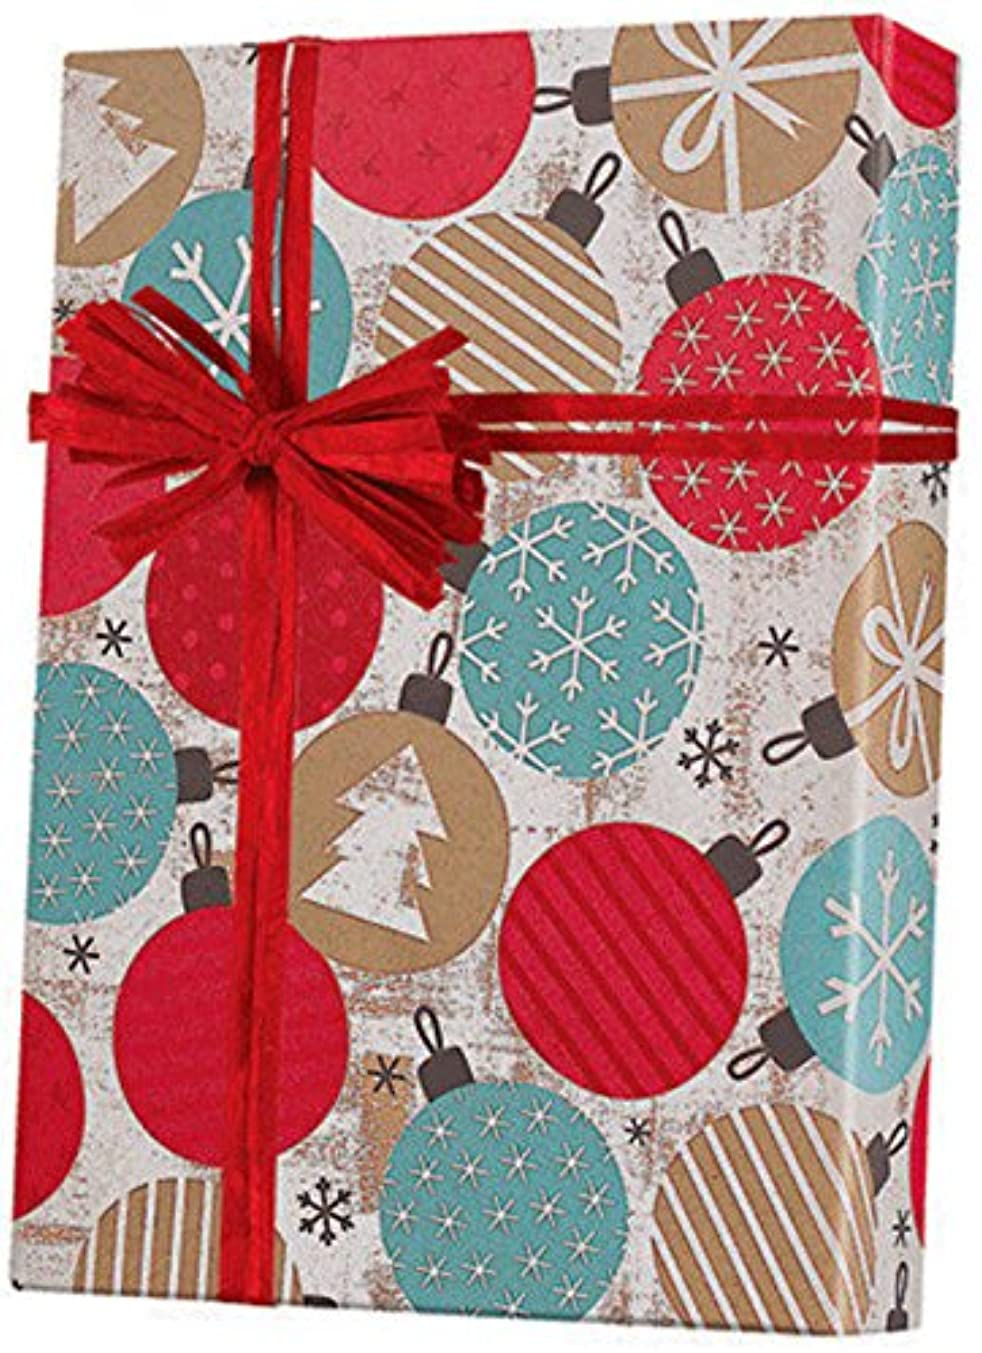 Vintage Kraft Ornaments Christmas Gift Wrap Paper - 15 Foot Roll